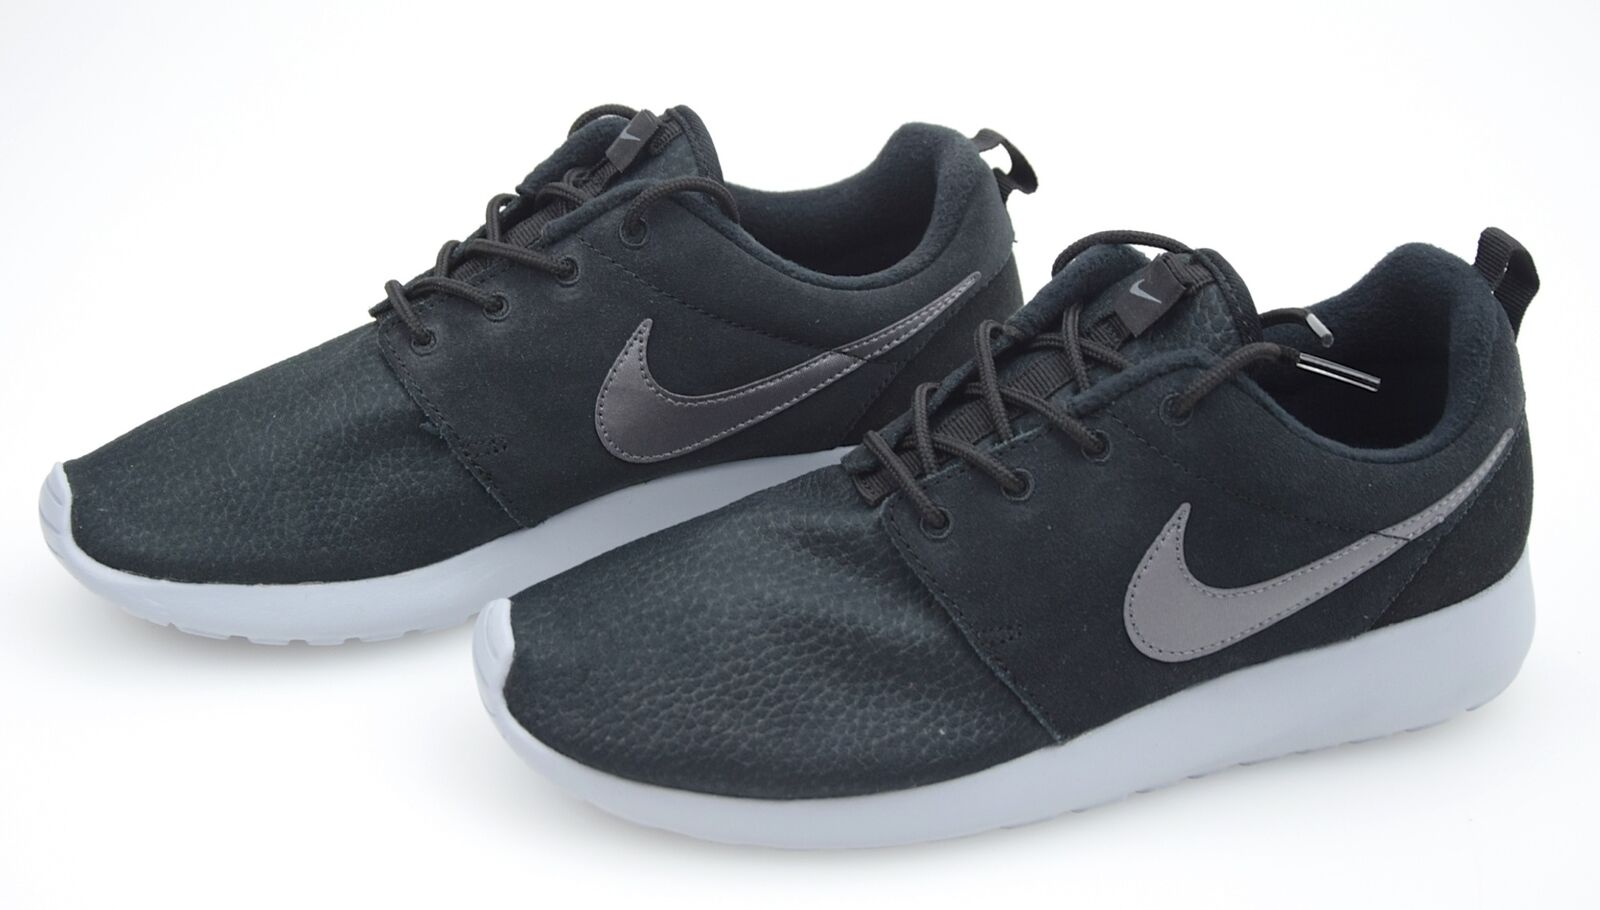 ed6708454e5b Nike Roshe One Suede Shoes SNEAKERS Trainers Men s Brown 685280-270 UK 6  EUR 40 US 7 Cm 24 5 for sale online